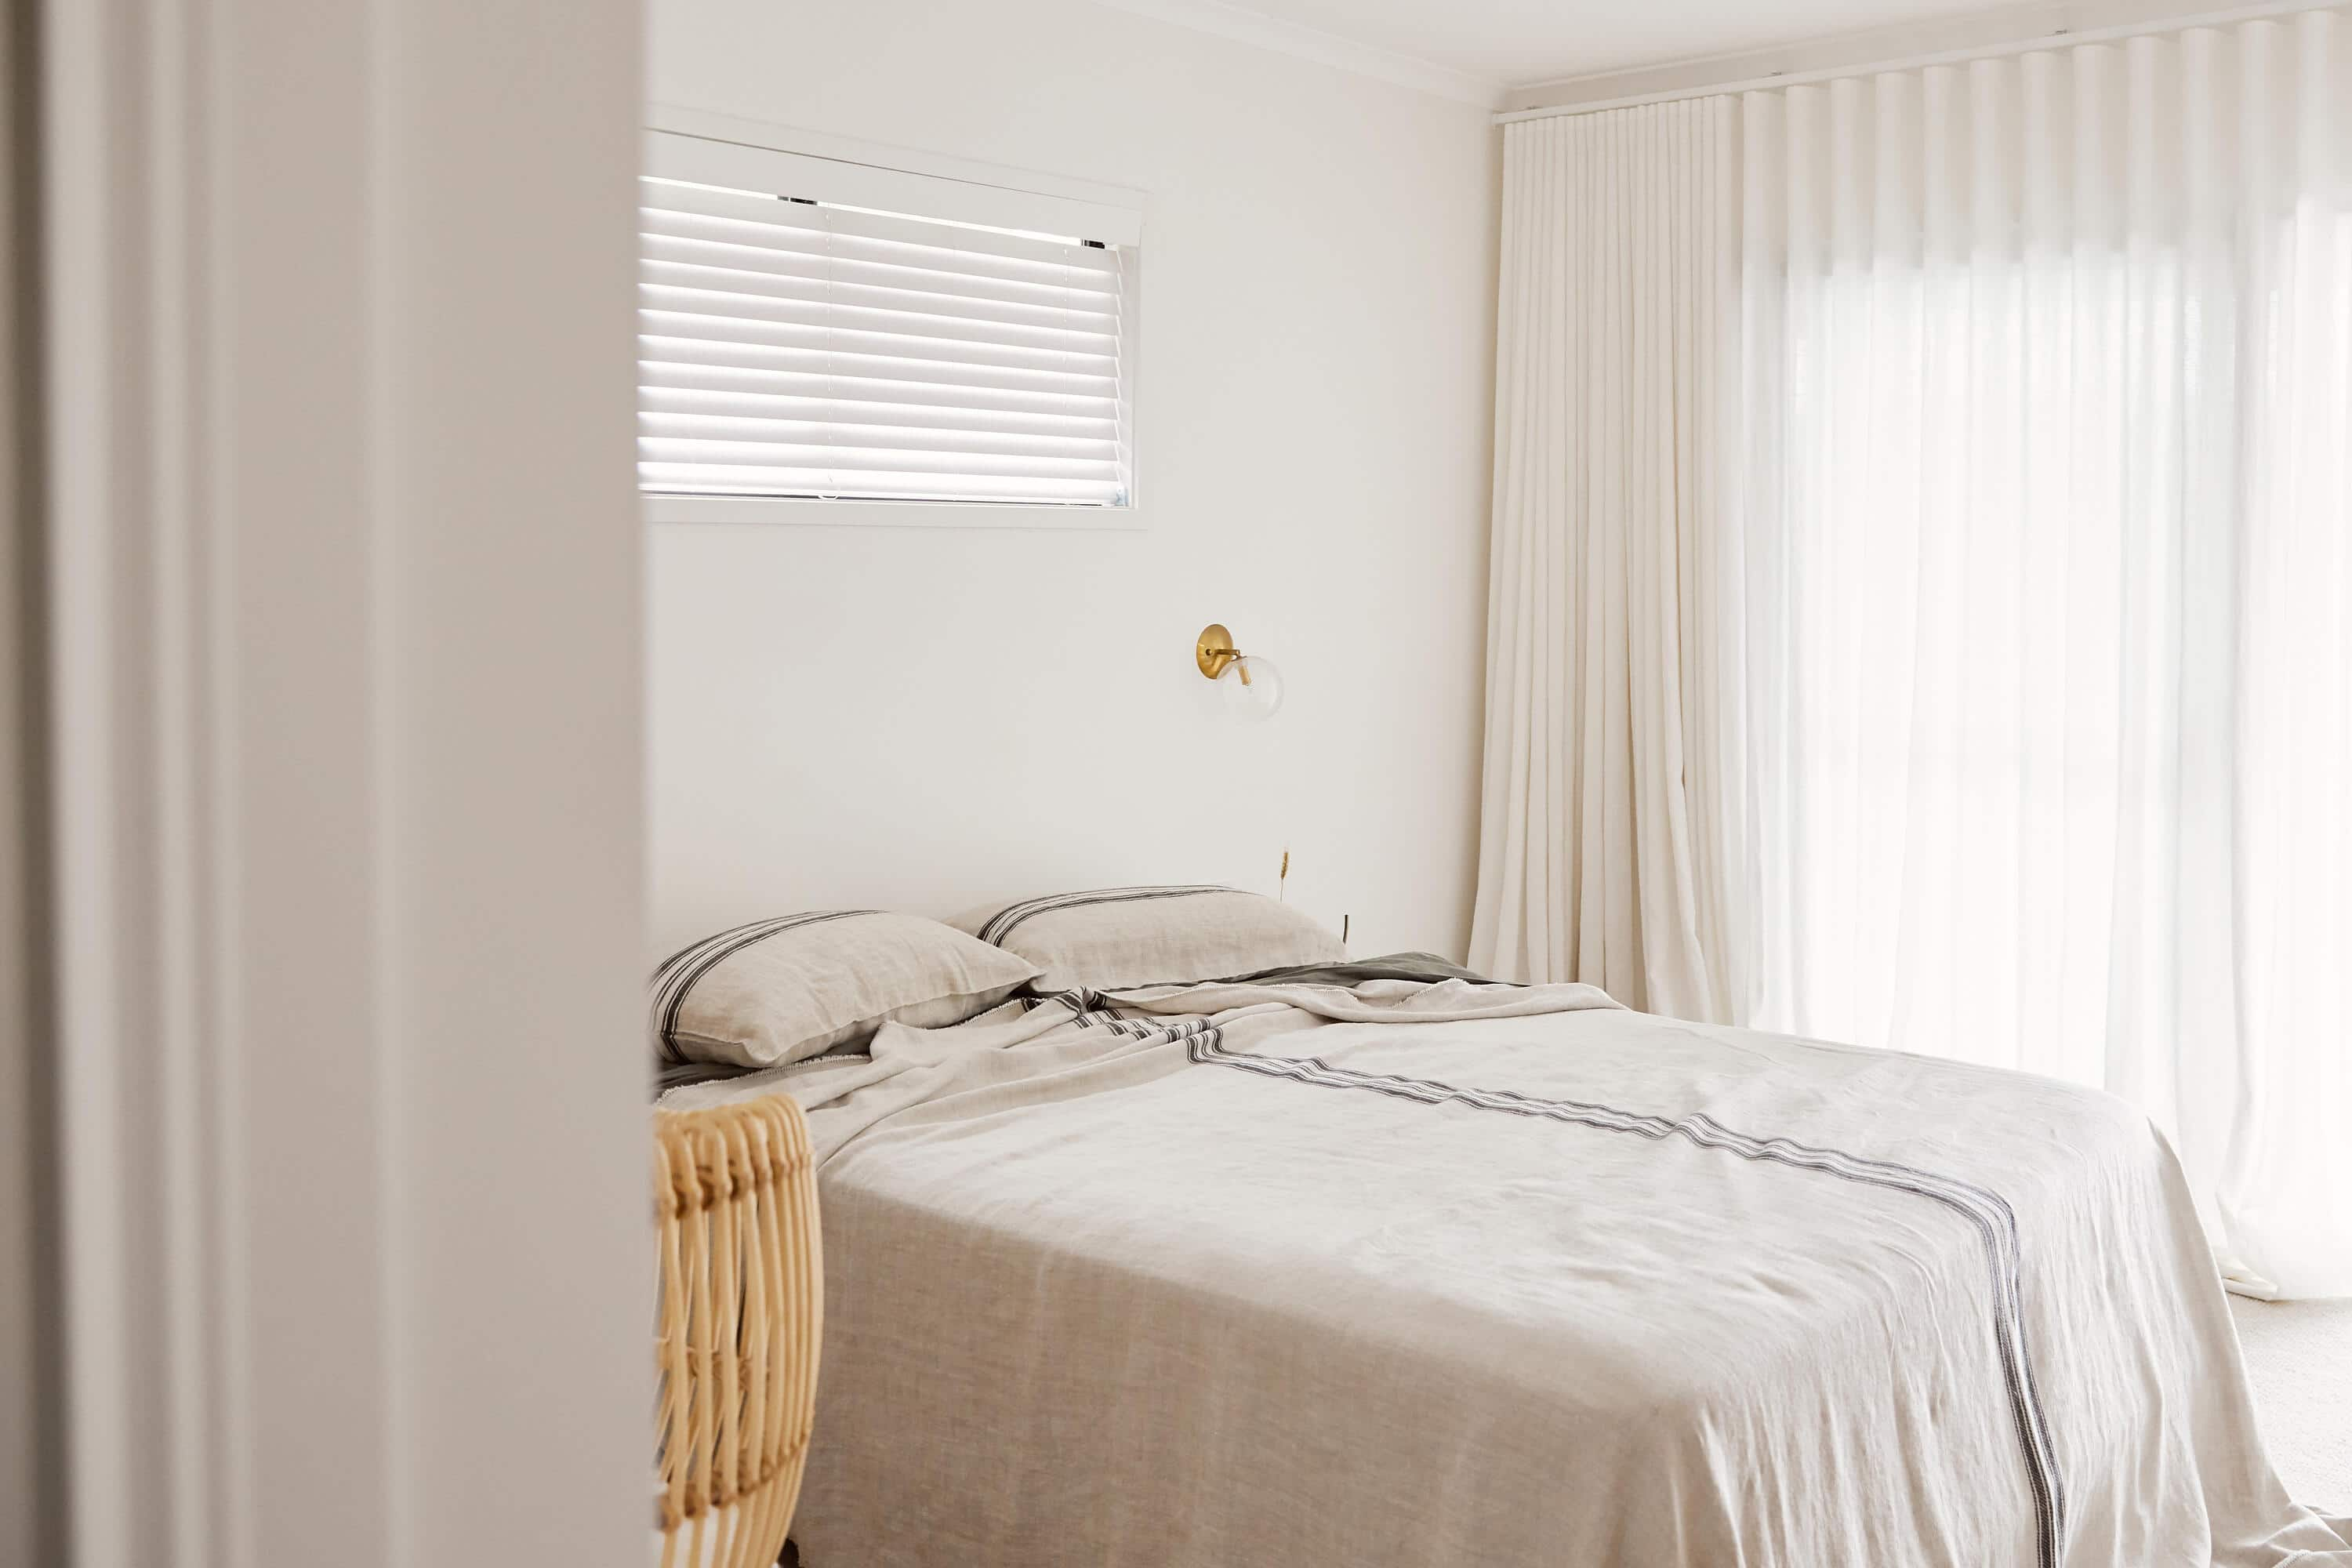 Linen bed cover and linen sheets by IN BED